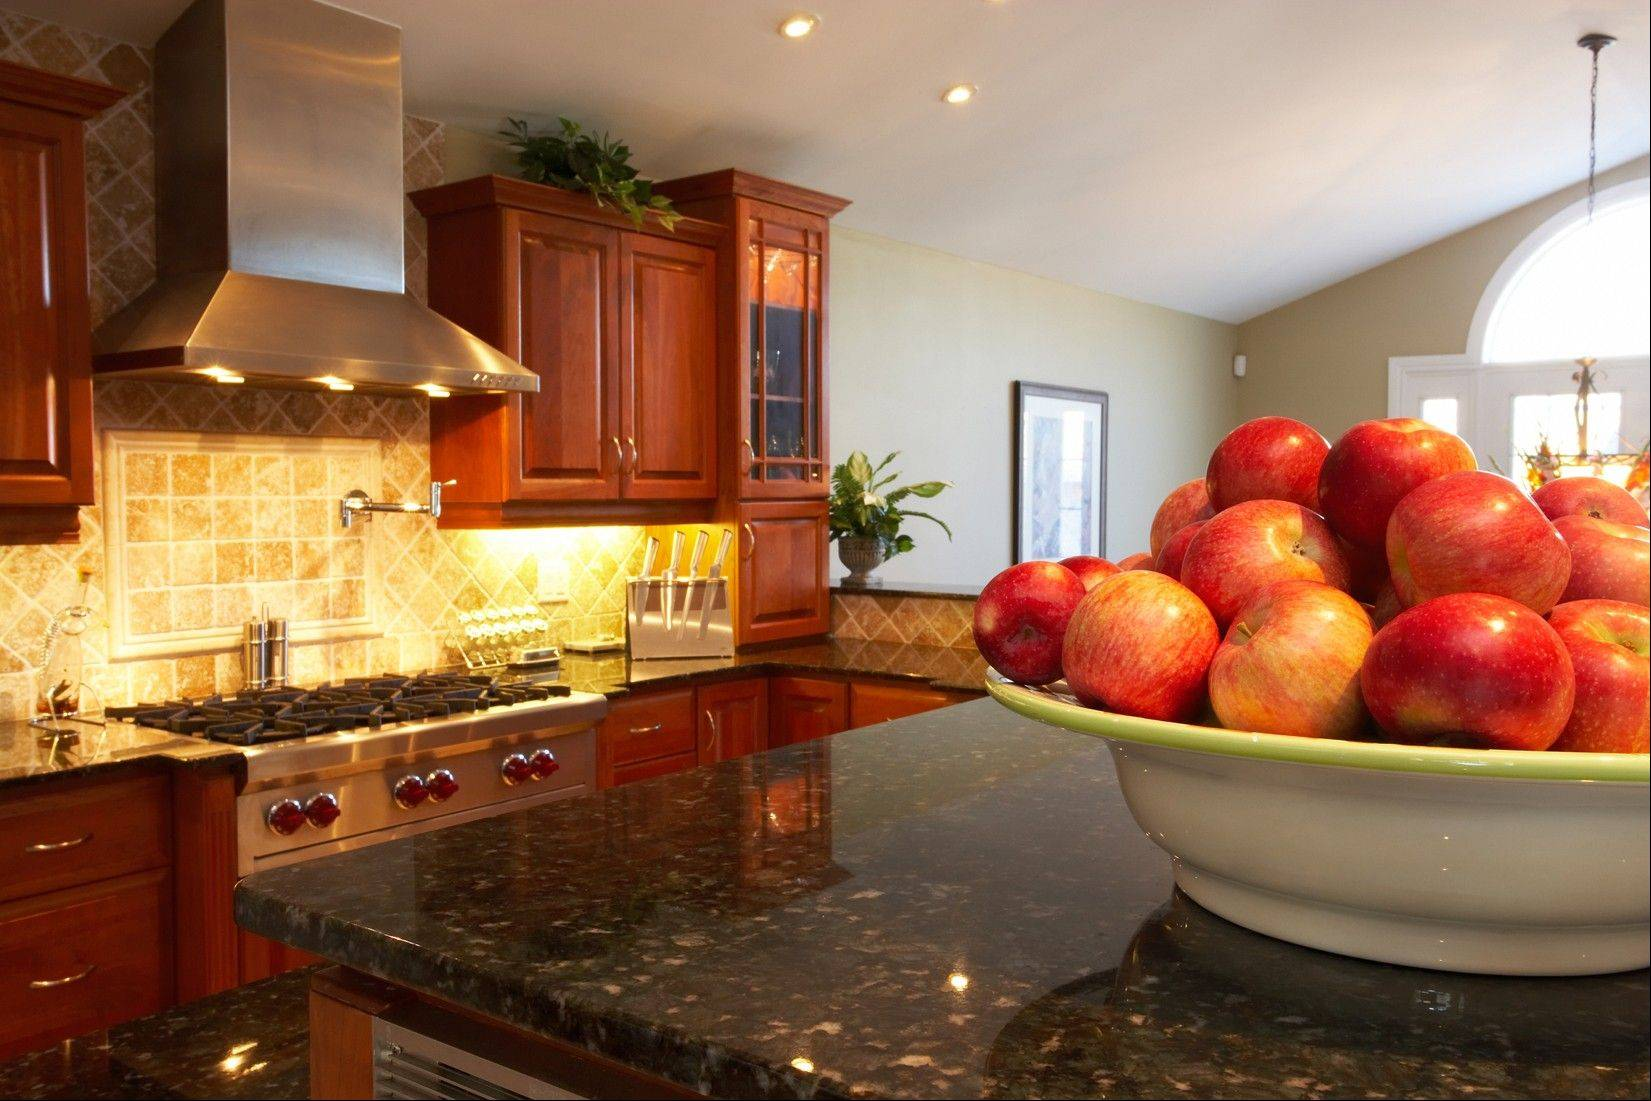 Many homeowners are updating their kitchen with granite counters.